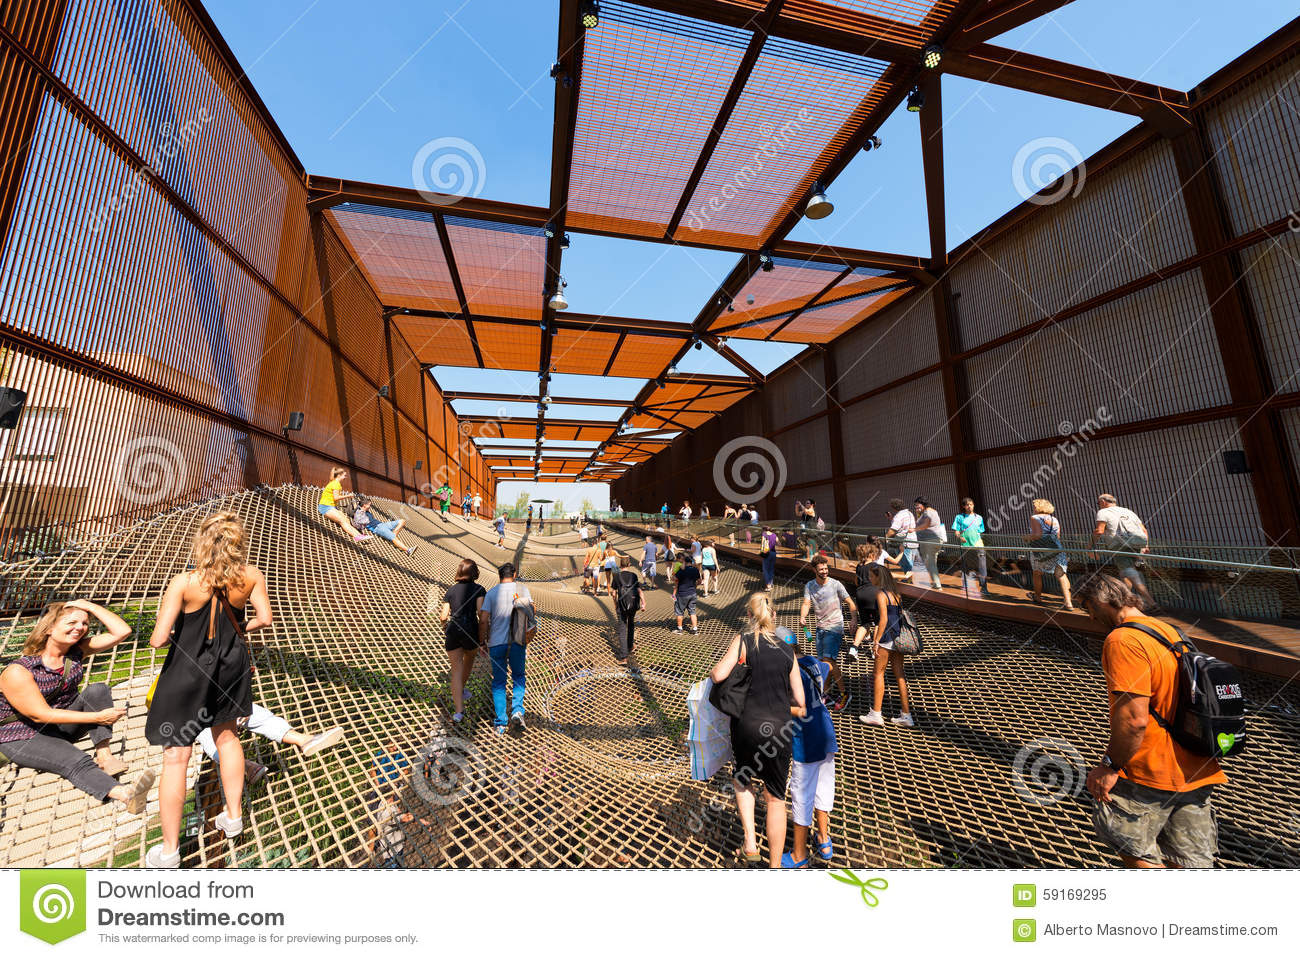 America pavilion at expo milano 2015 editorial photo for Home decor expo 2015